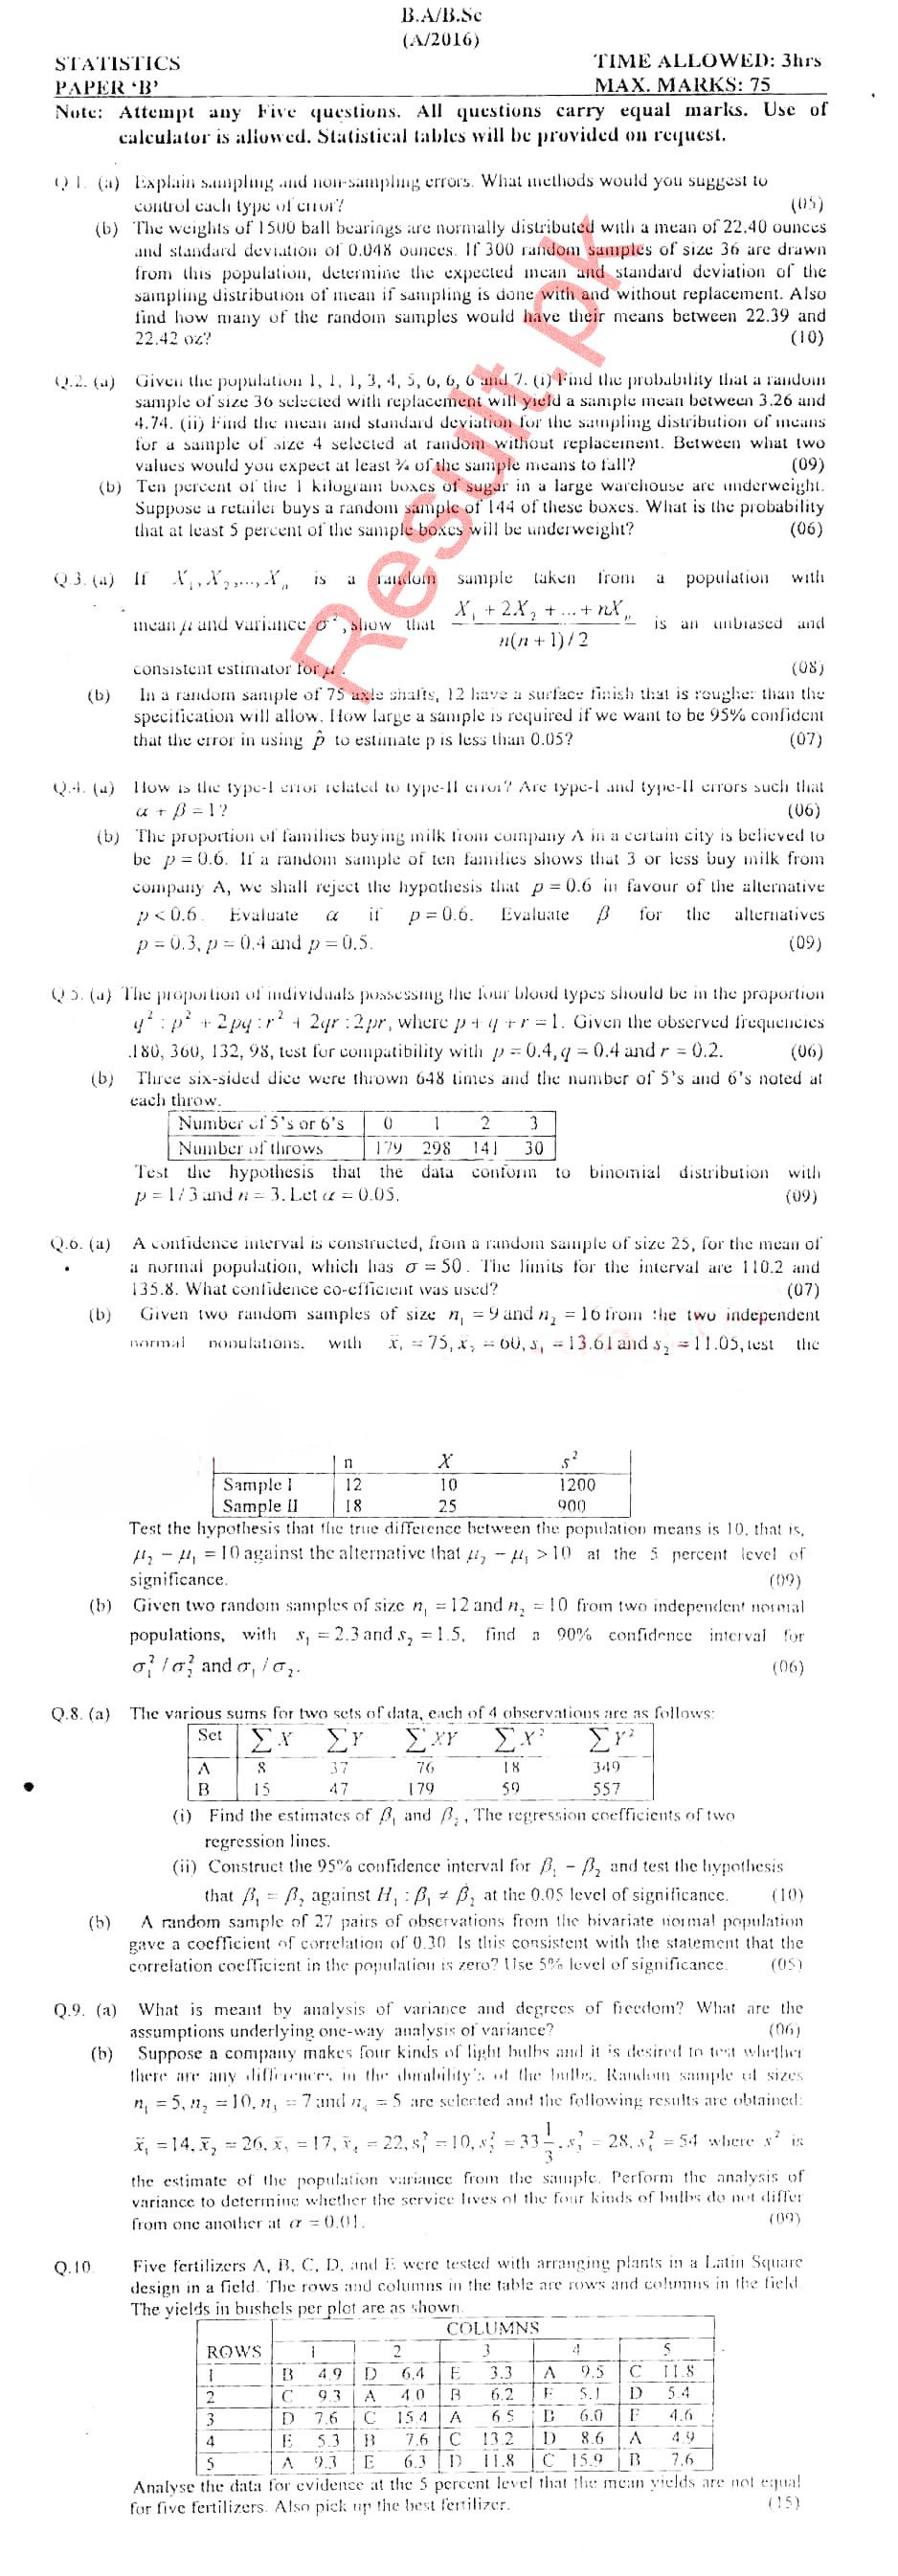 Chapter No 14 Of Statistics For Bsc 2 Notes Pdf